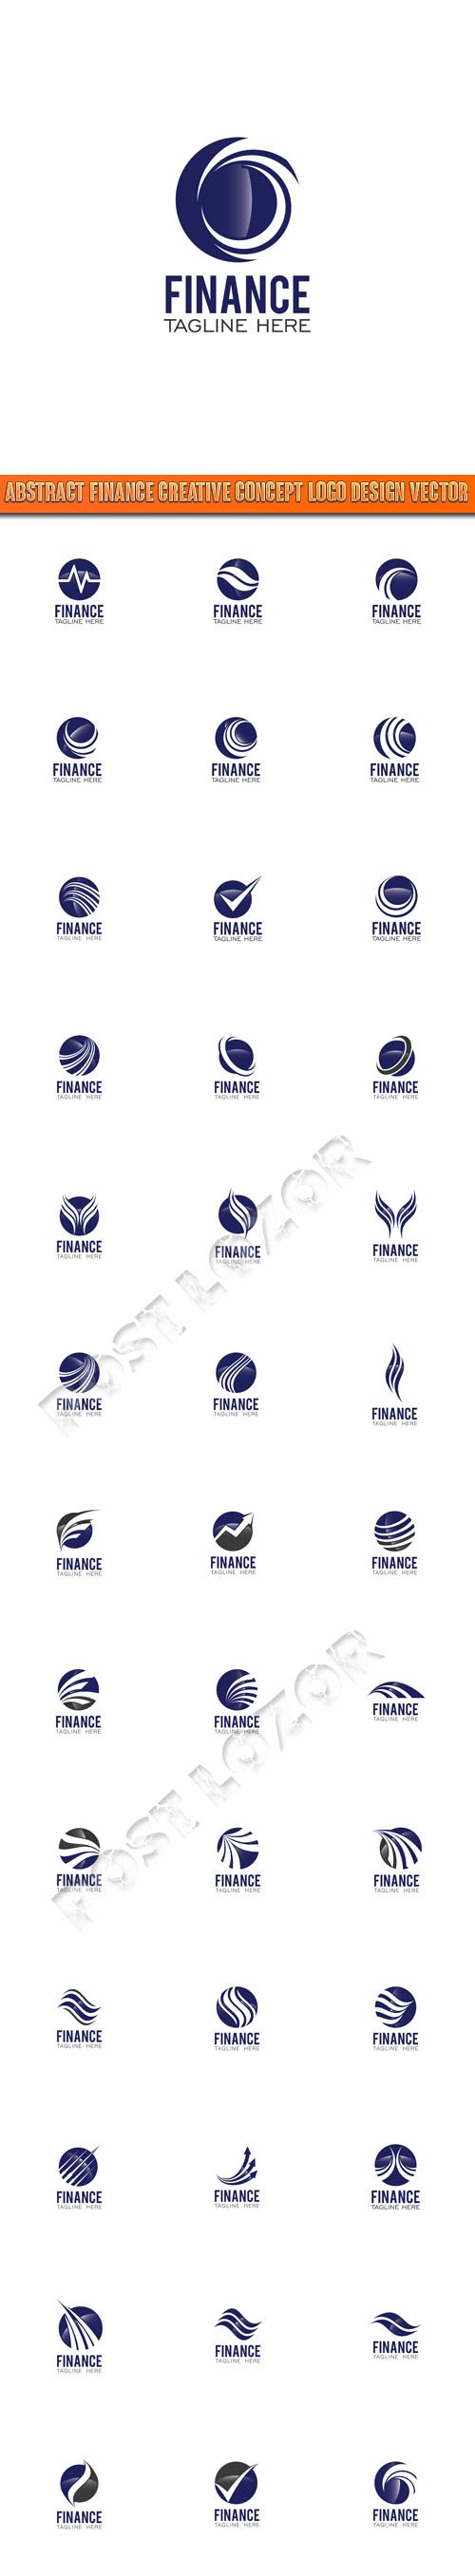 Abstract Finance Creative Concept Logo Design vector